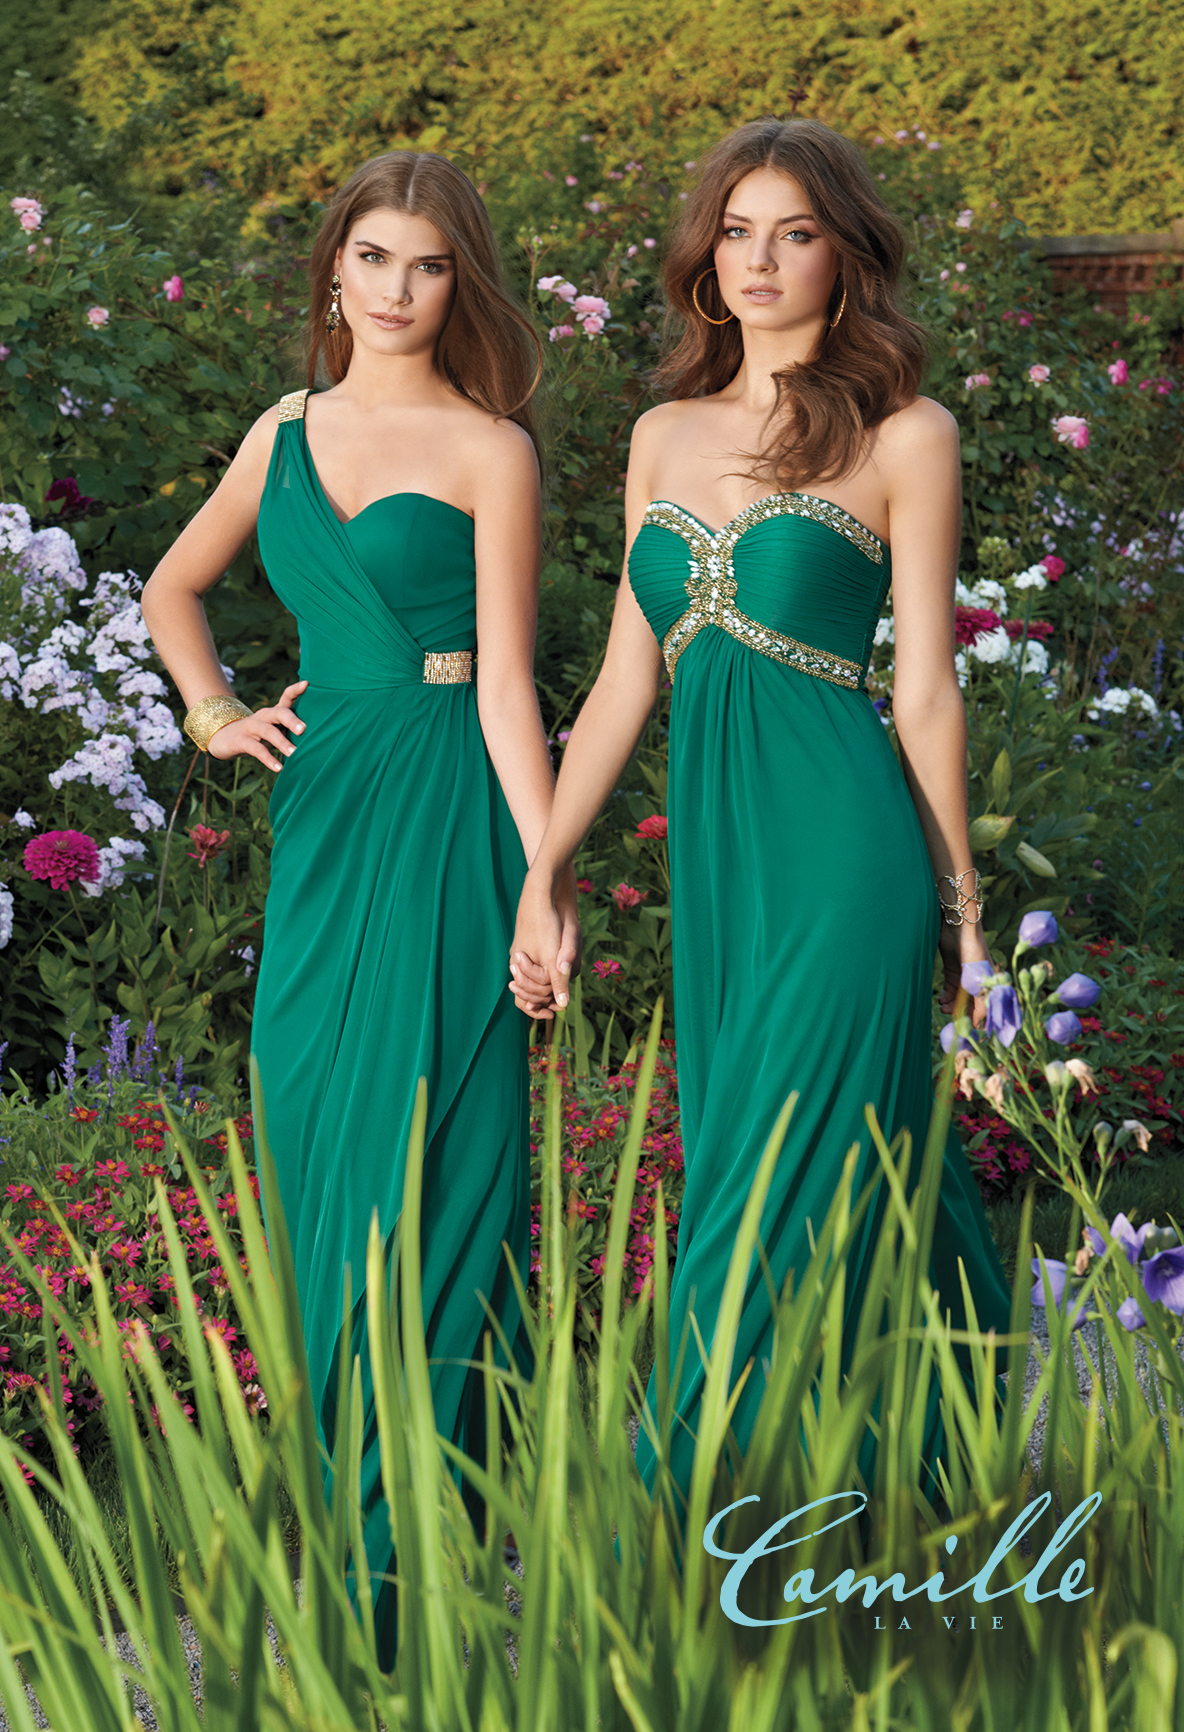 new bridesmaid dresses designed by camille la vie | Camille La Vie